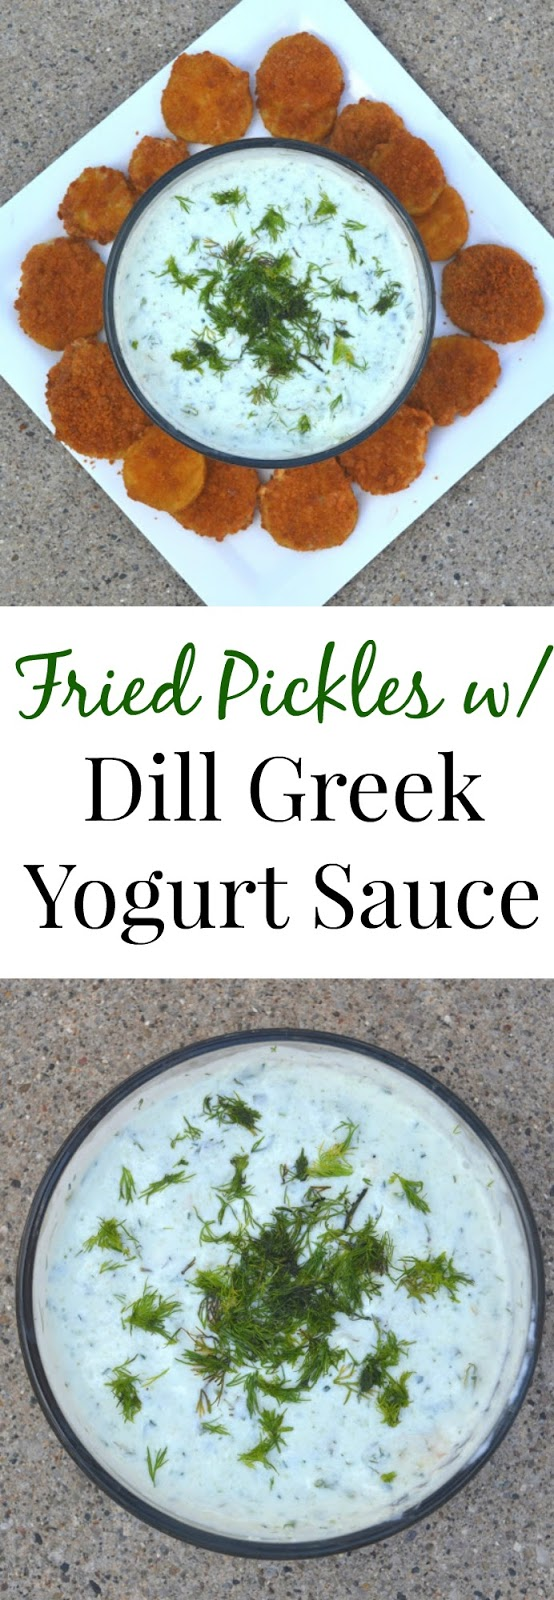 Fried Pickles with Dill Greek Yogurt Sauce- a simple appetizer that is bursting with flavor. You will want to eat the dill Greek yogurt sauce on everything! www.nutritionistreviews.com